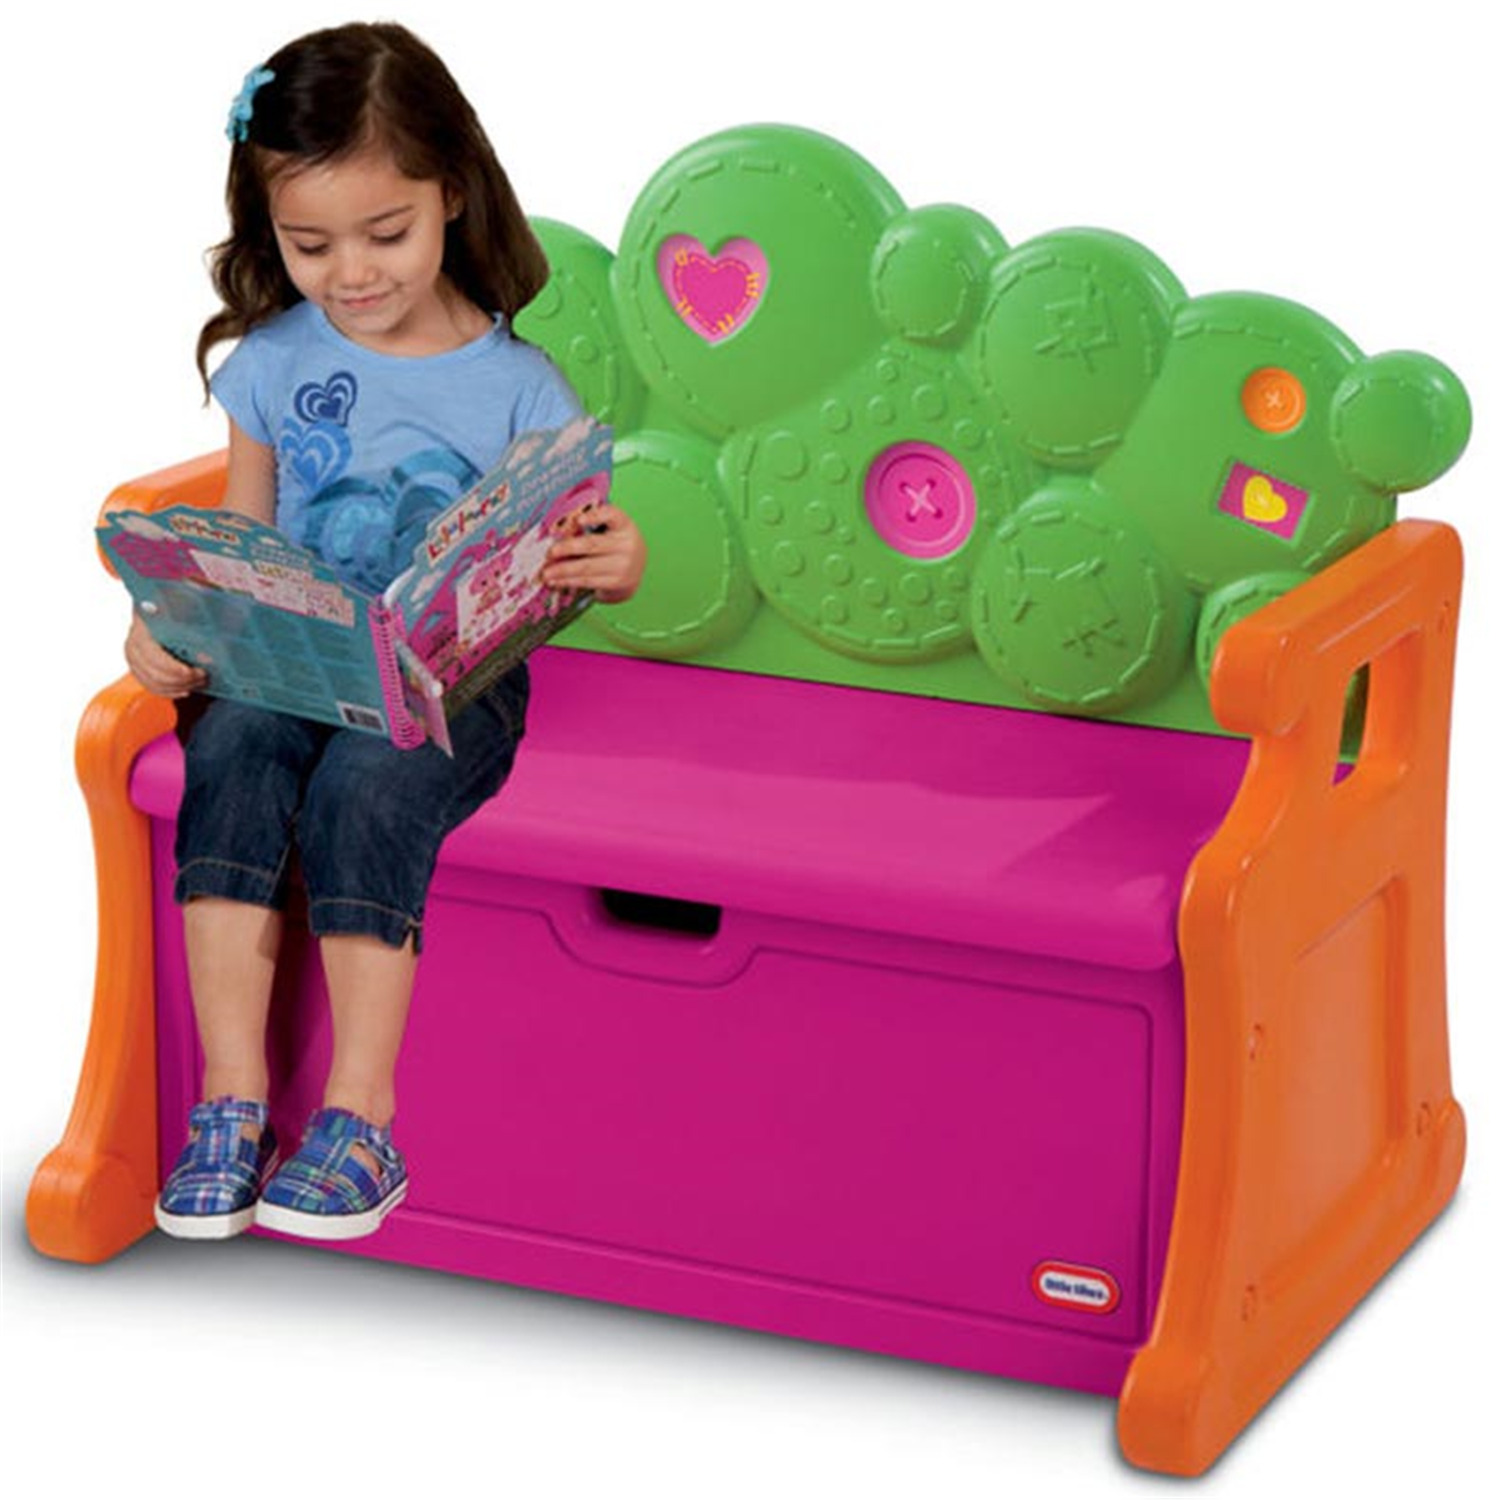 Little Tikes Little Tikes Lalaloopsy Toy Box By Oj Commerce 631870m